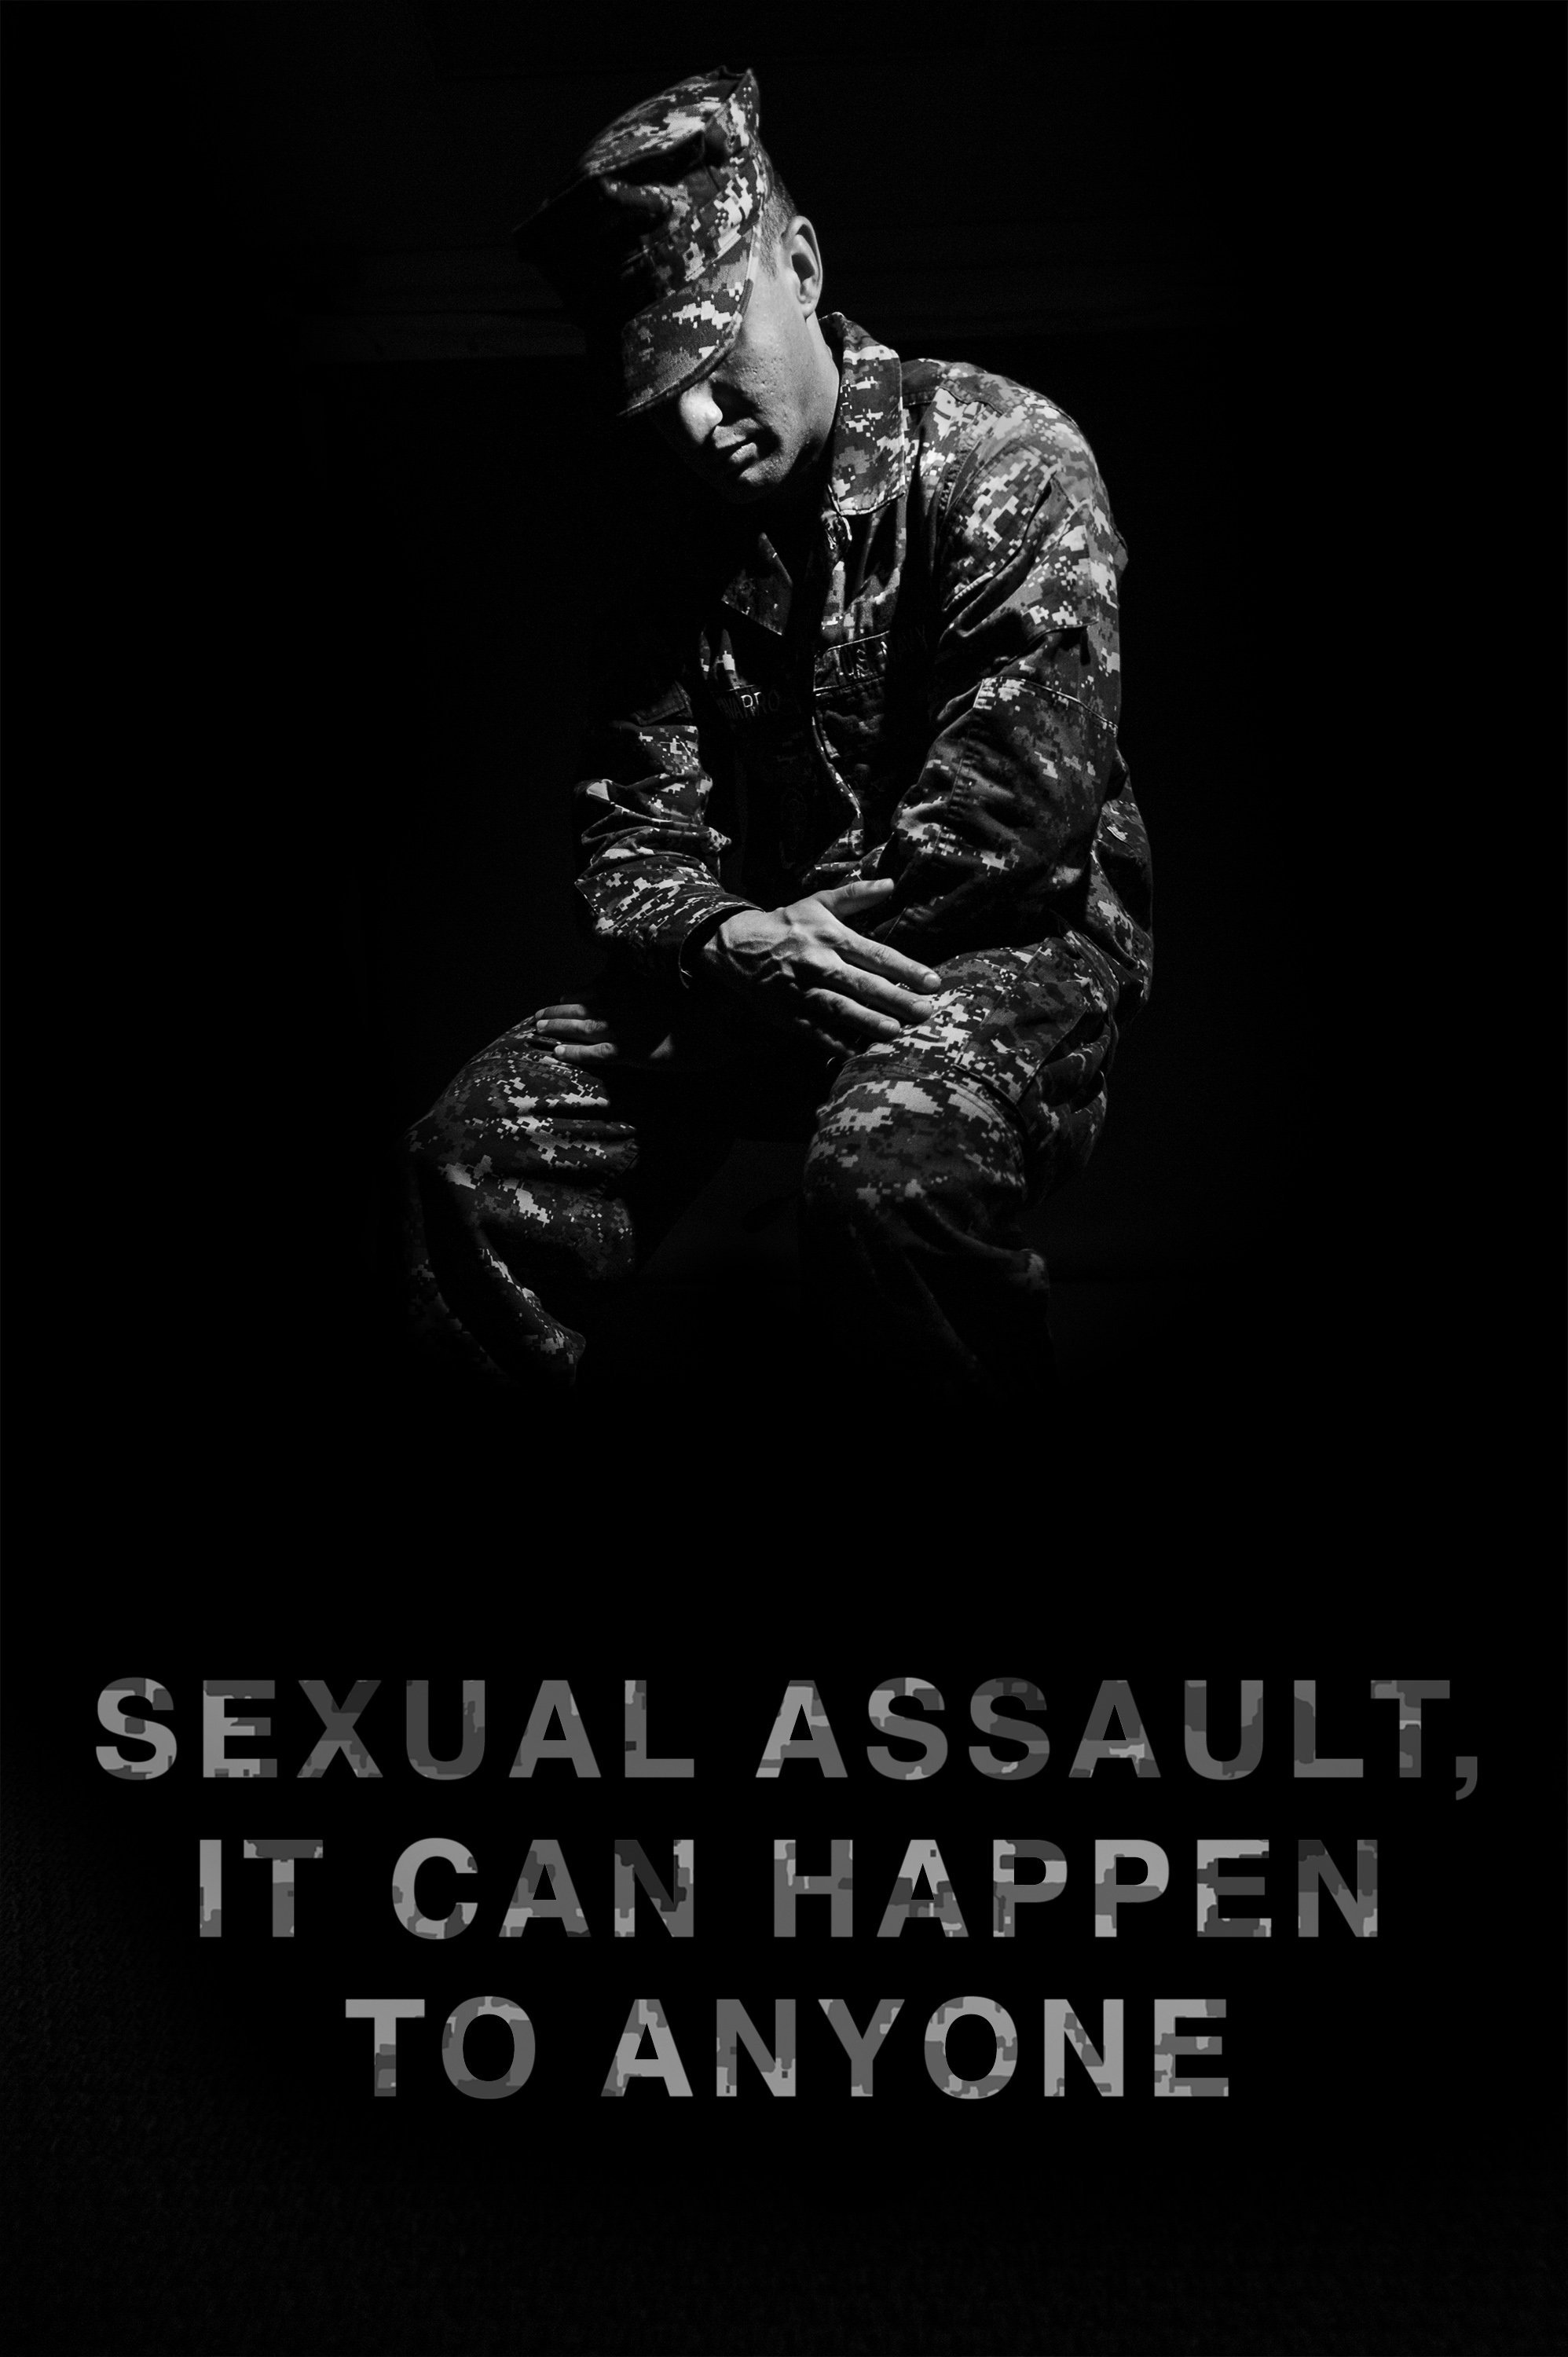 131030-N-XD424-001 PEARL HARBOR (Oct. 29, 2013) A poster produced by the U.S. Navy supporting the Sexual Assault Prevention and Response (SAPR) program. Fleet wide Sexual Assault Prevention and Response (SAPR) program training teaches Sailors the effective ways they can report and prevent sexual assault incidents. (U.S. Navy photo illustration by Mass Communication Specialist 2nd Class Dustin Sisco/Released)